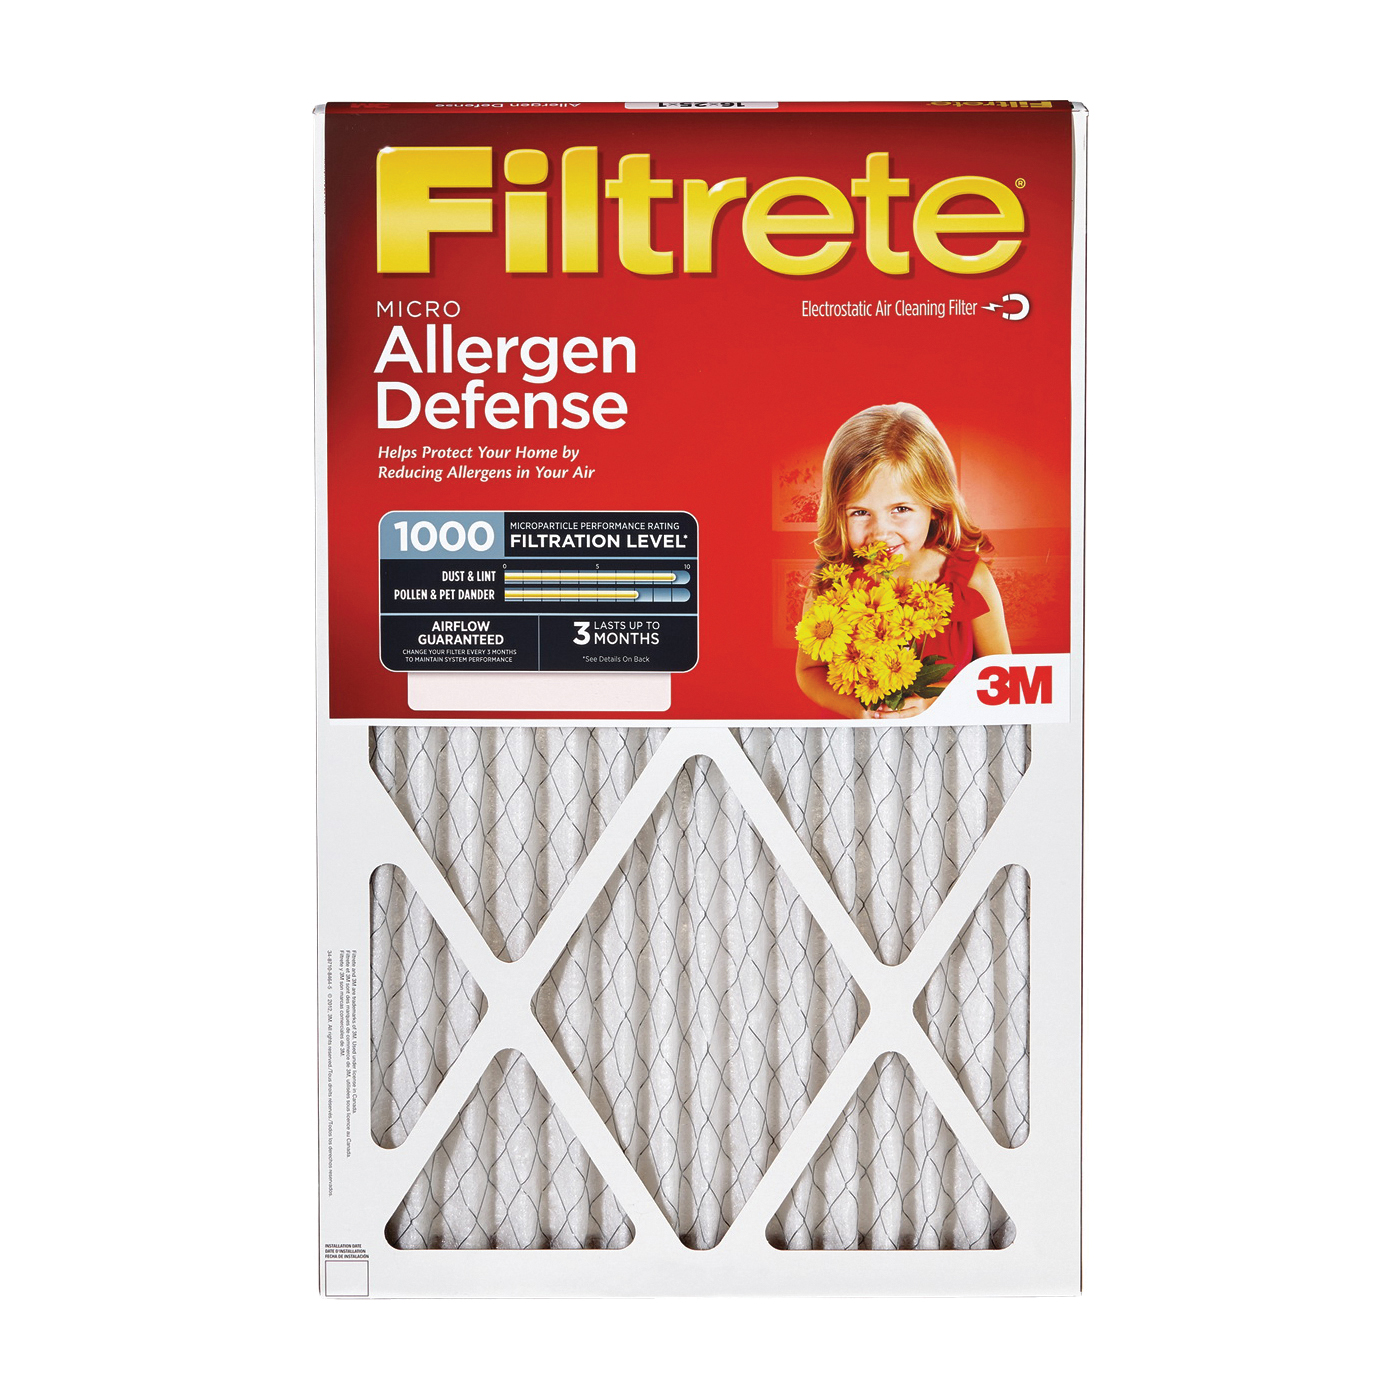 Picture of Filtrete 9800DC-6 Micro Air Filter, 20 in L, 16 in W, 11 MERV, Pleated Fabric Filter Media